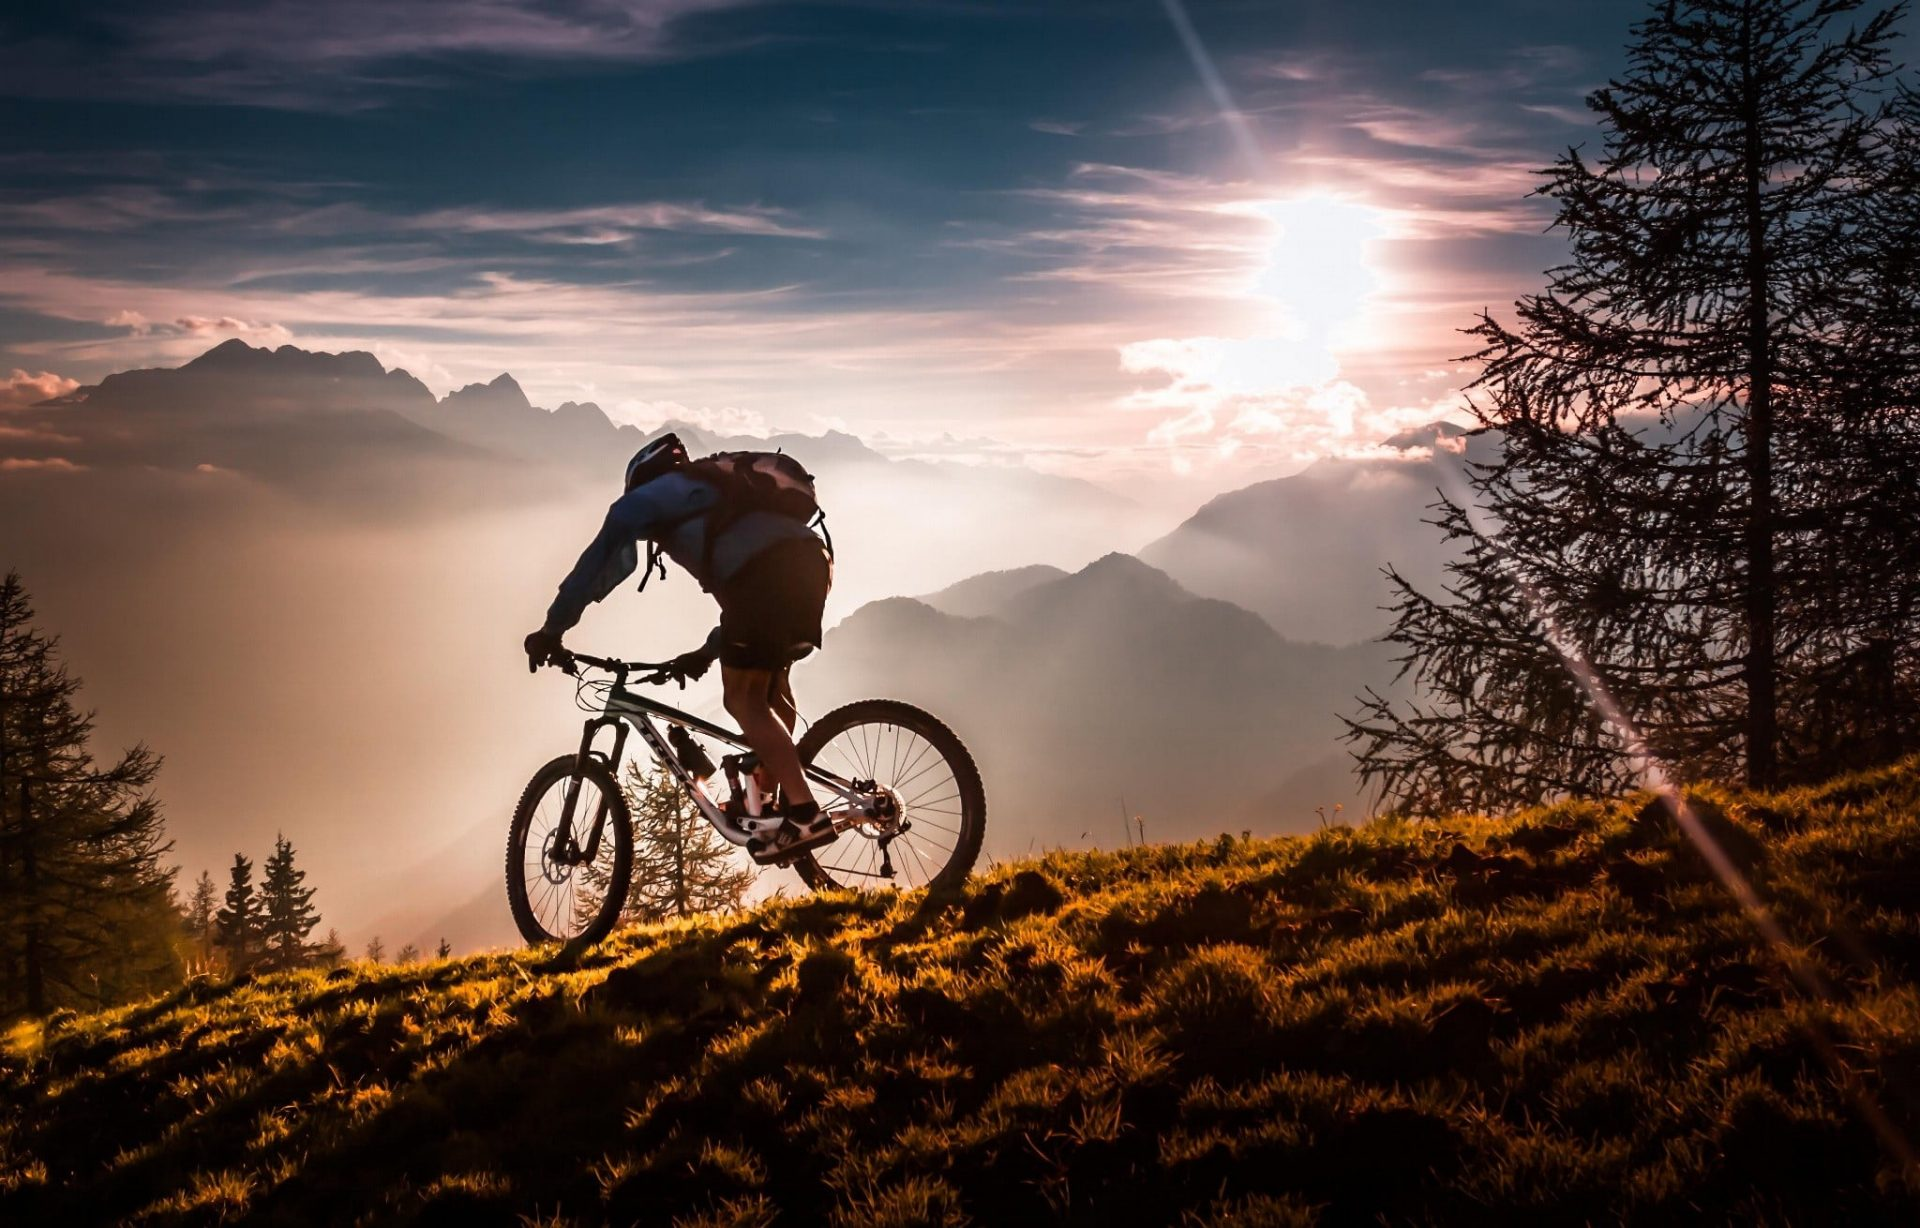 a man ride the bike on the mountain